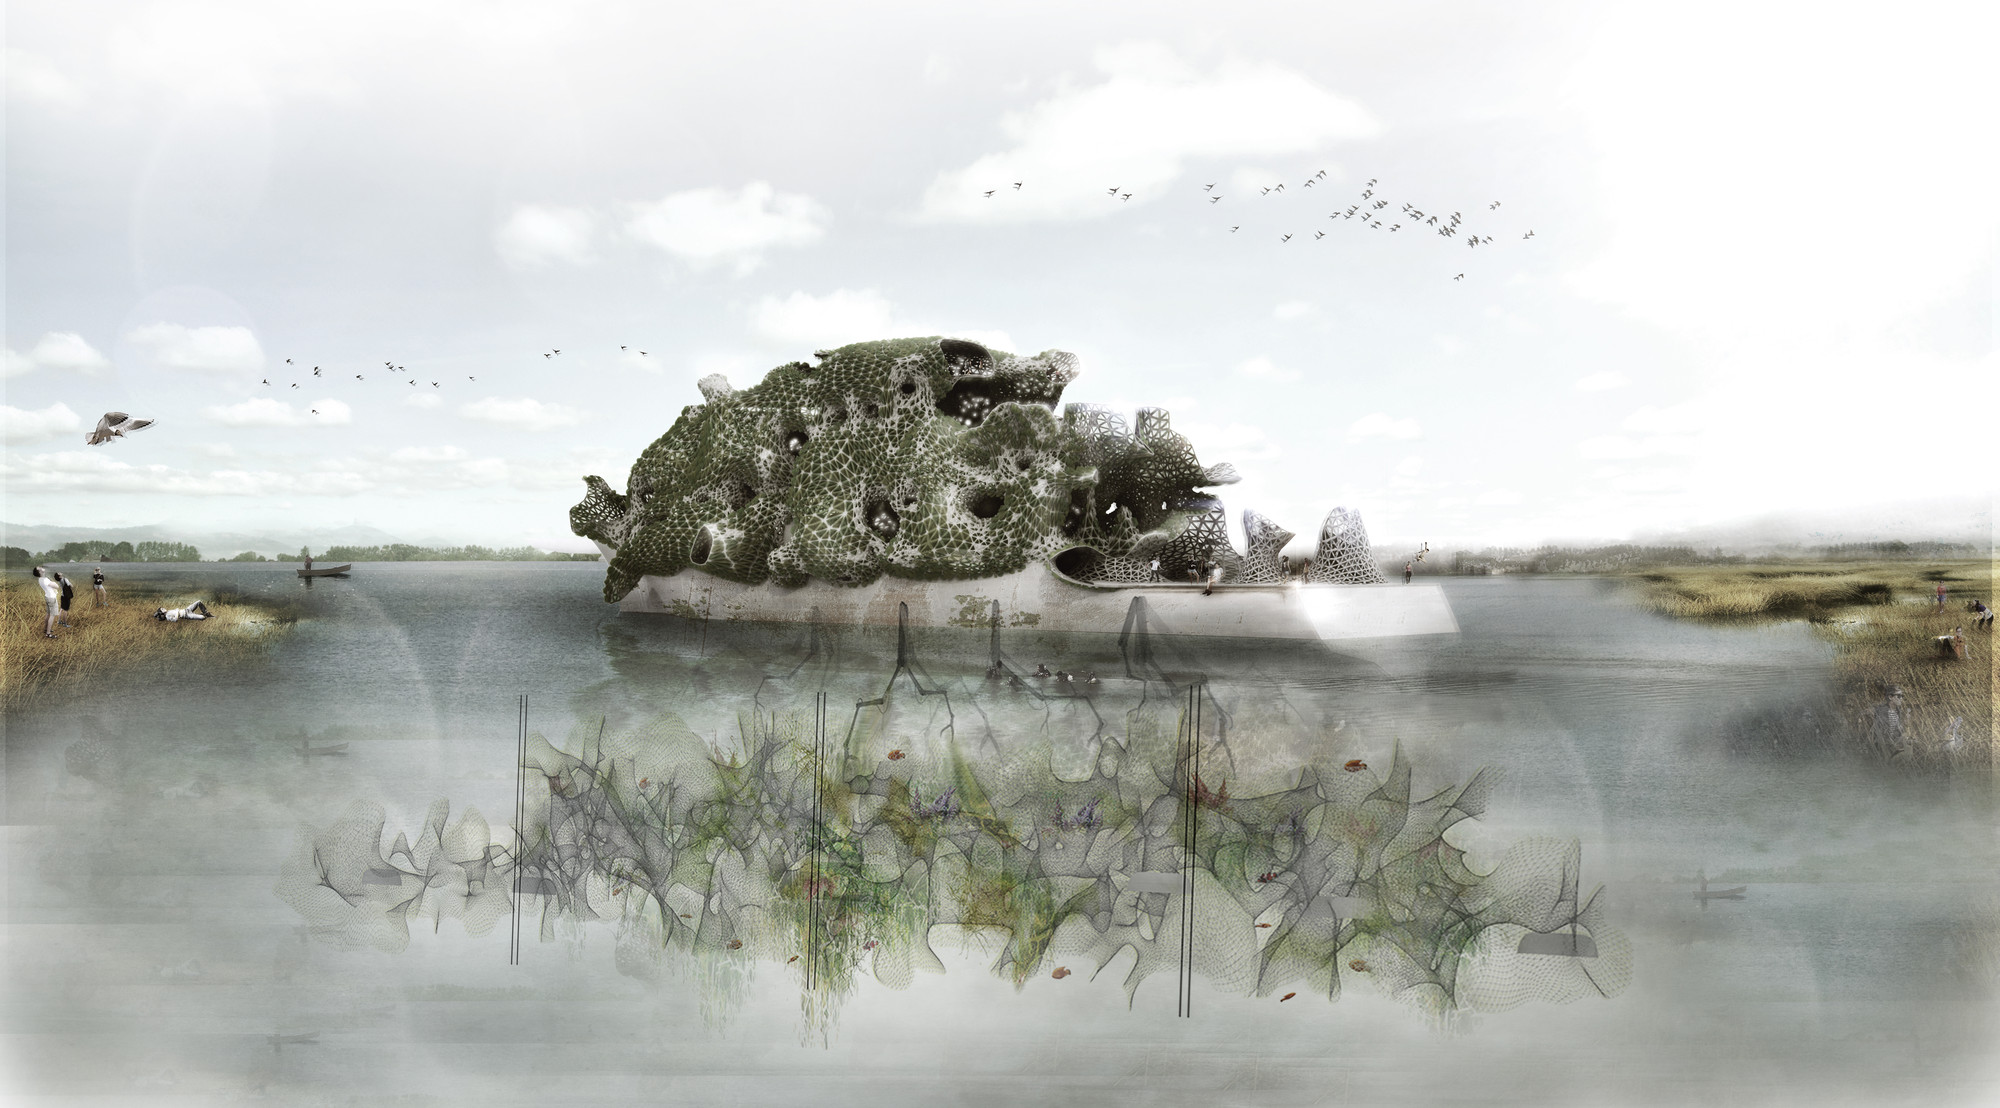 3 Student Projects Selected as Winners of ISARCH Awards, Rethinking Biotope / Kyriaki Goti and Nikolaos Xenos. Image Courtesy of IS ARCH